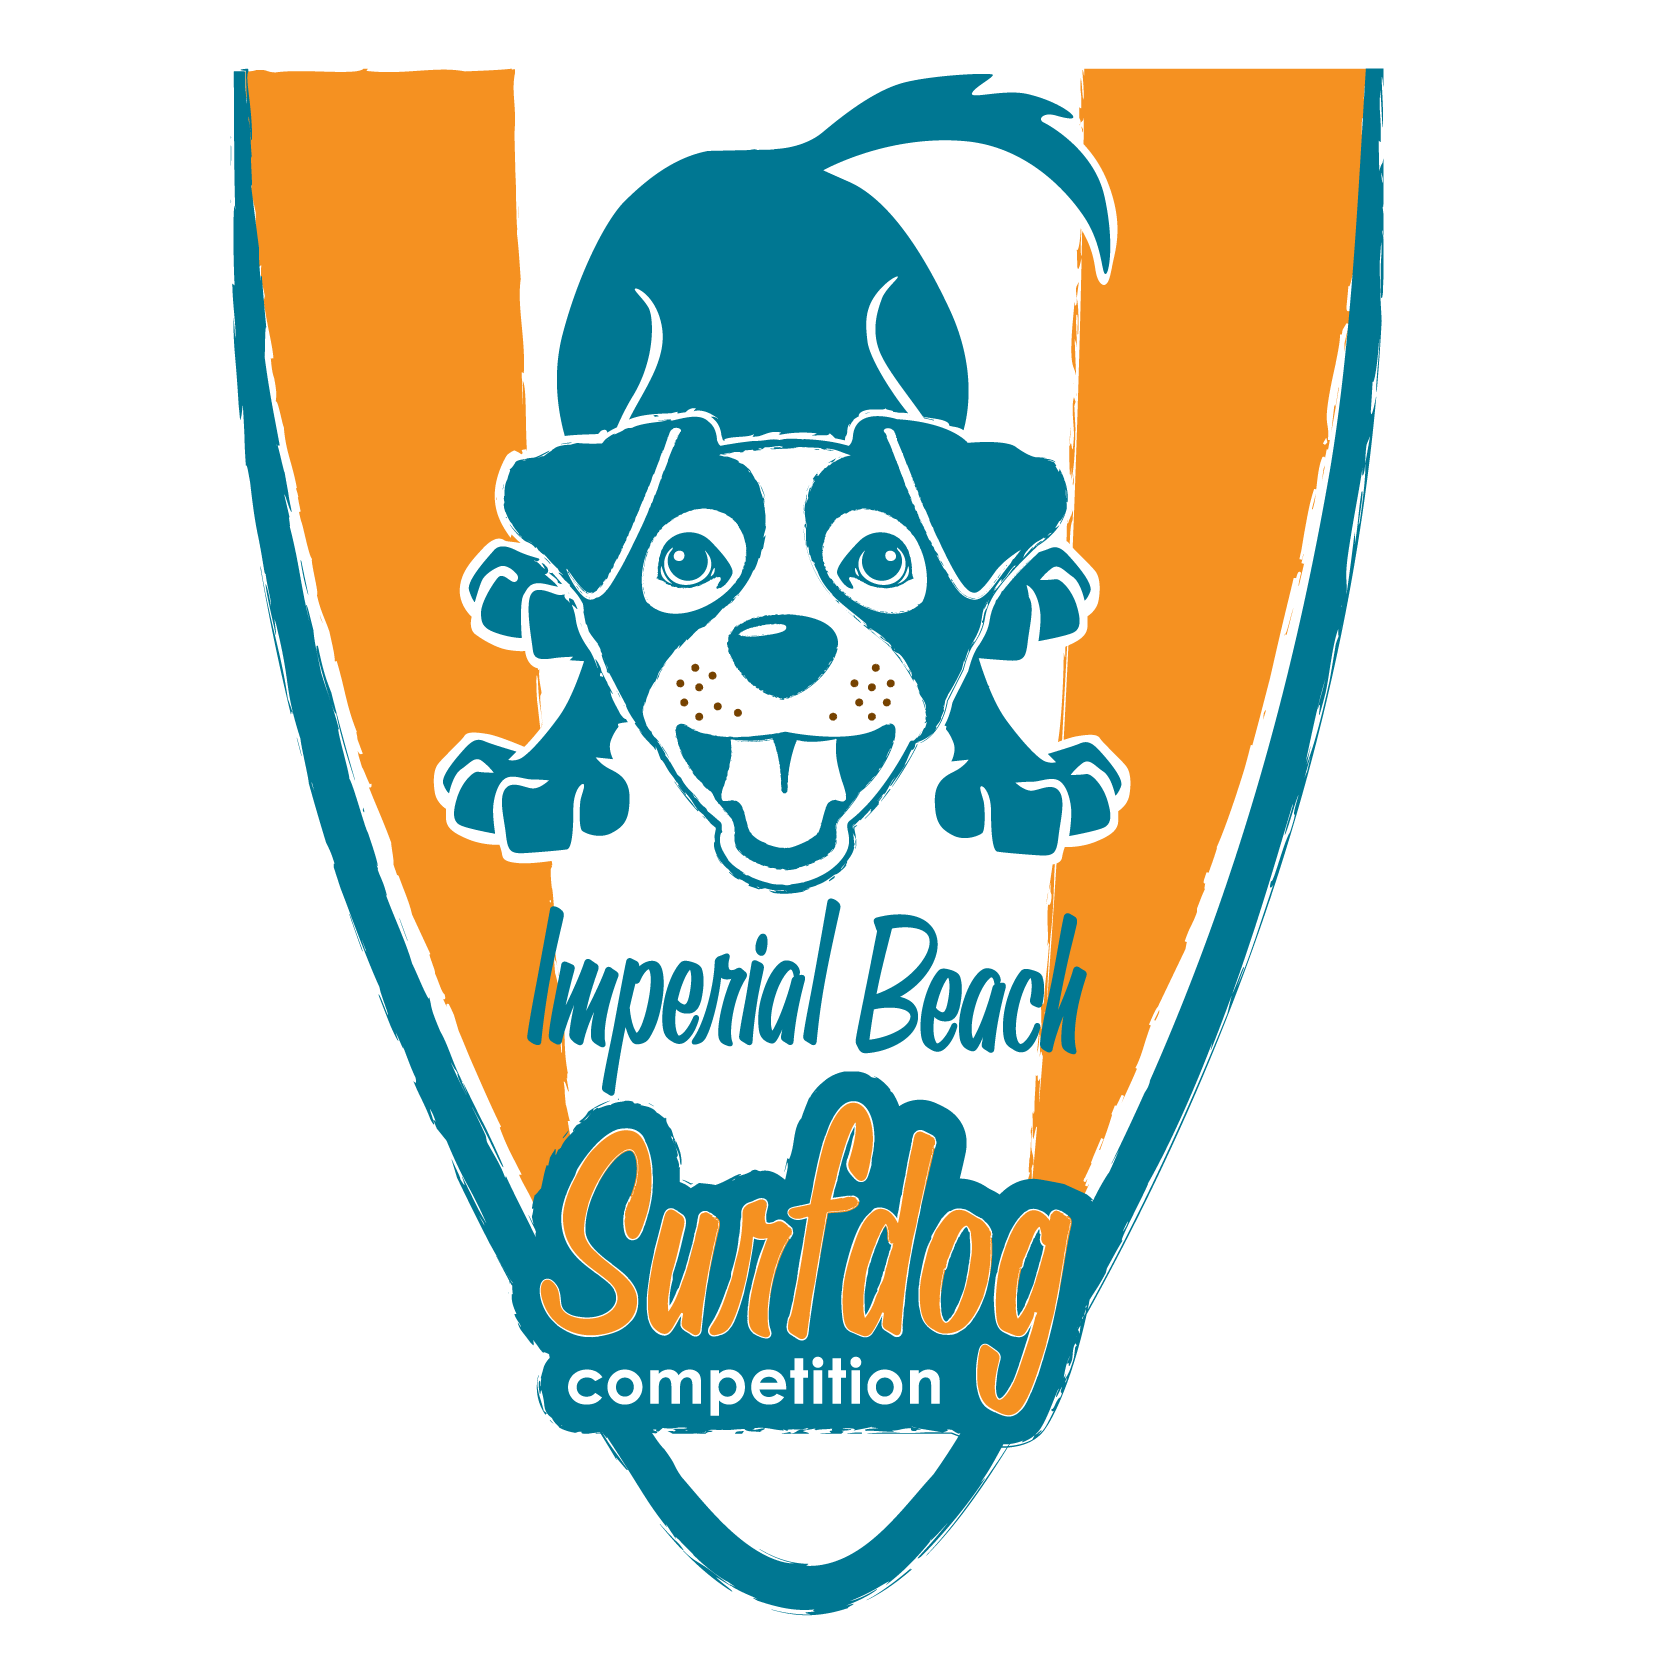 AUGUST 10, 2019IMPERIAL BEACH, CA - Get stoked! It's time for the most adorable surf event of the year . . .The Imperial Beach Surf Dog Competition, where fearless surFUR dogs will jump on their boards and hang 20! The Imperial Beach event is the original surf dog competition. Check out the action adjacent t the Imperial Beach Pier, where more than 60 dogs are expected to participate in this family friendly event, which raises funds for the San Diego Humane Society.